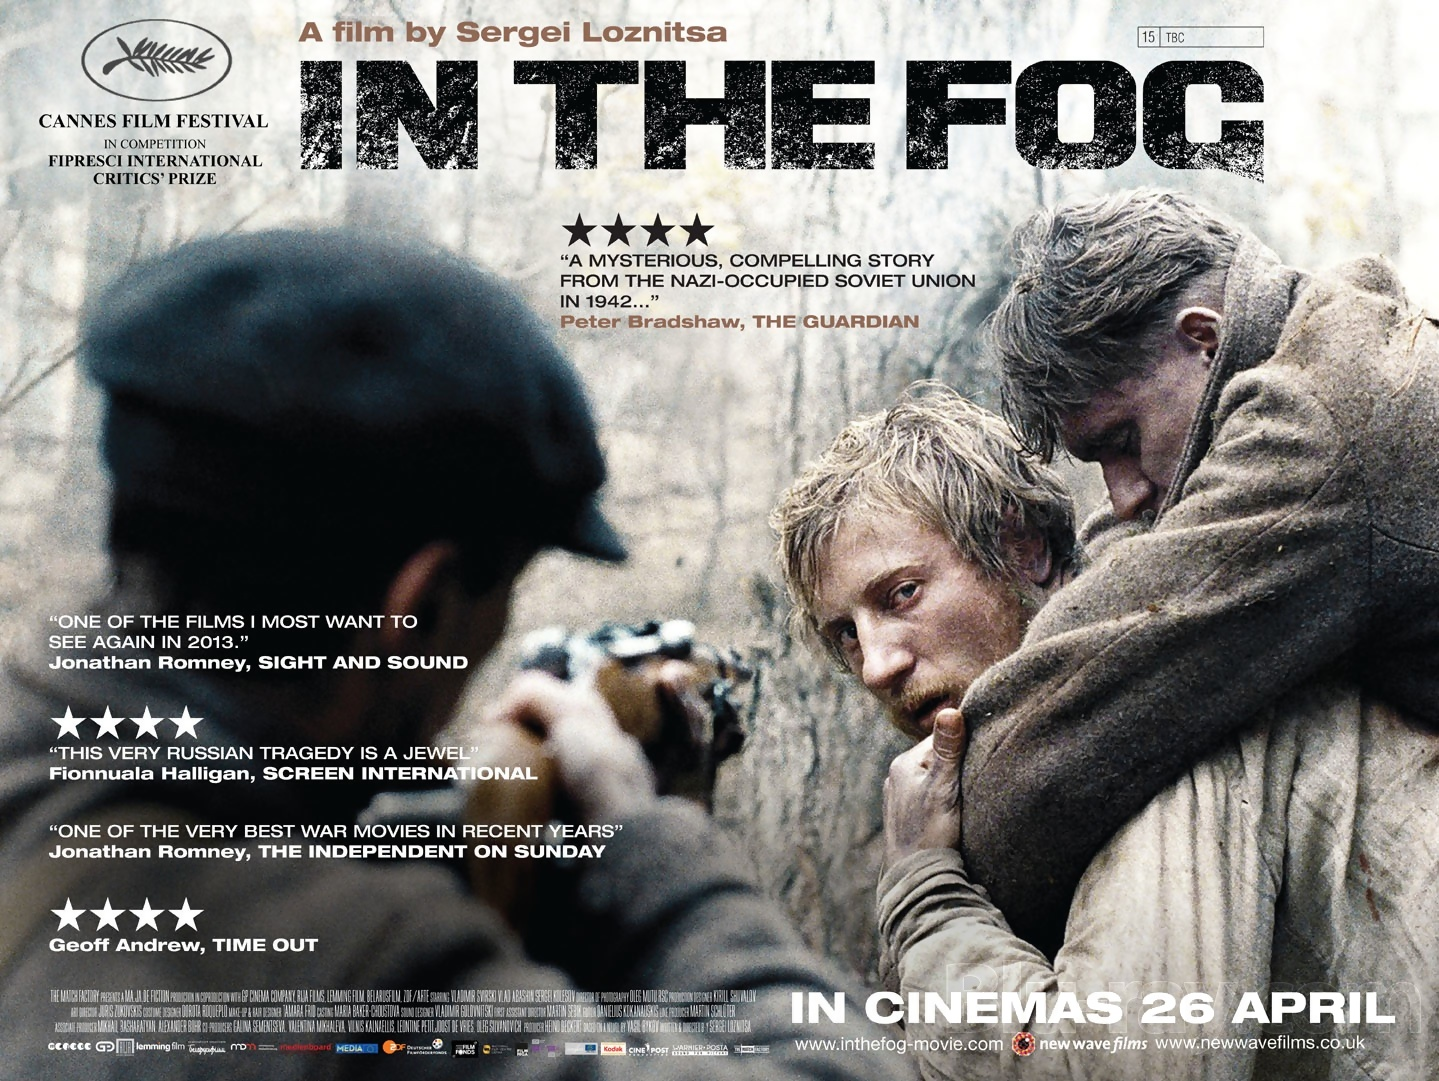 New Wave Films to Release Sergei Loznitsa's In the Fog